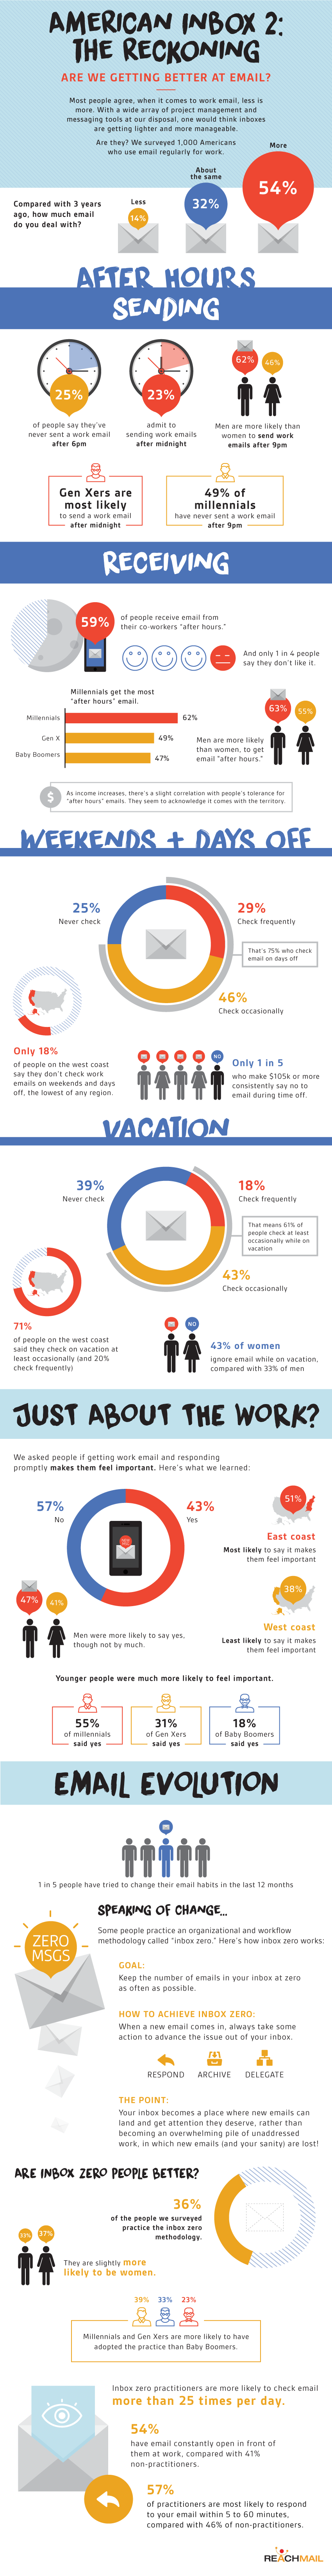 work-email-trends-infographic (1).png